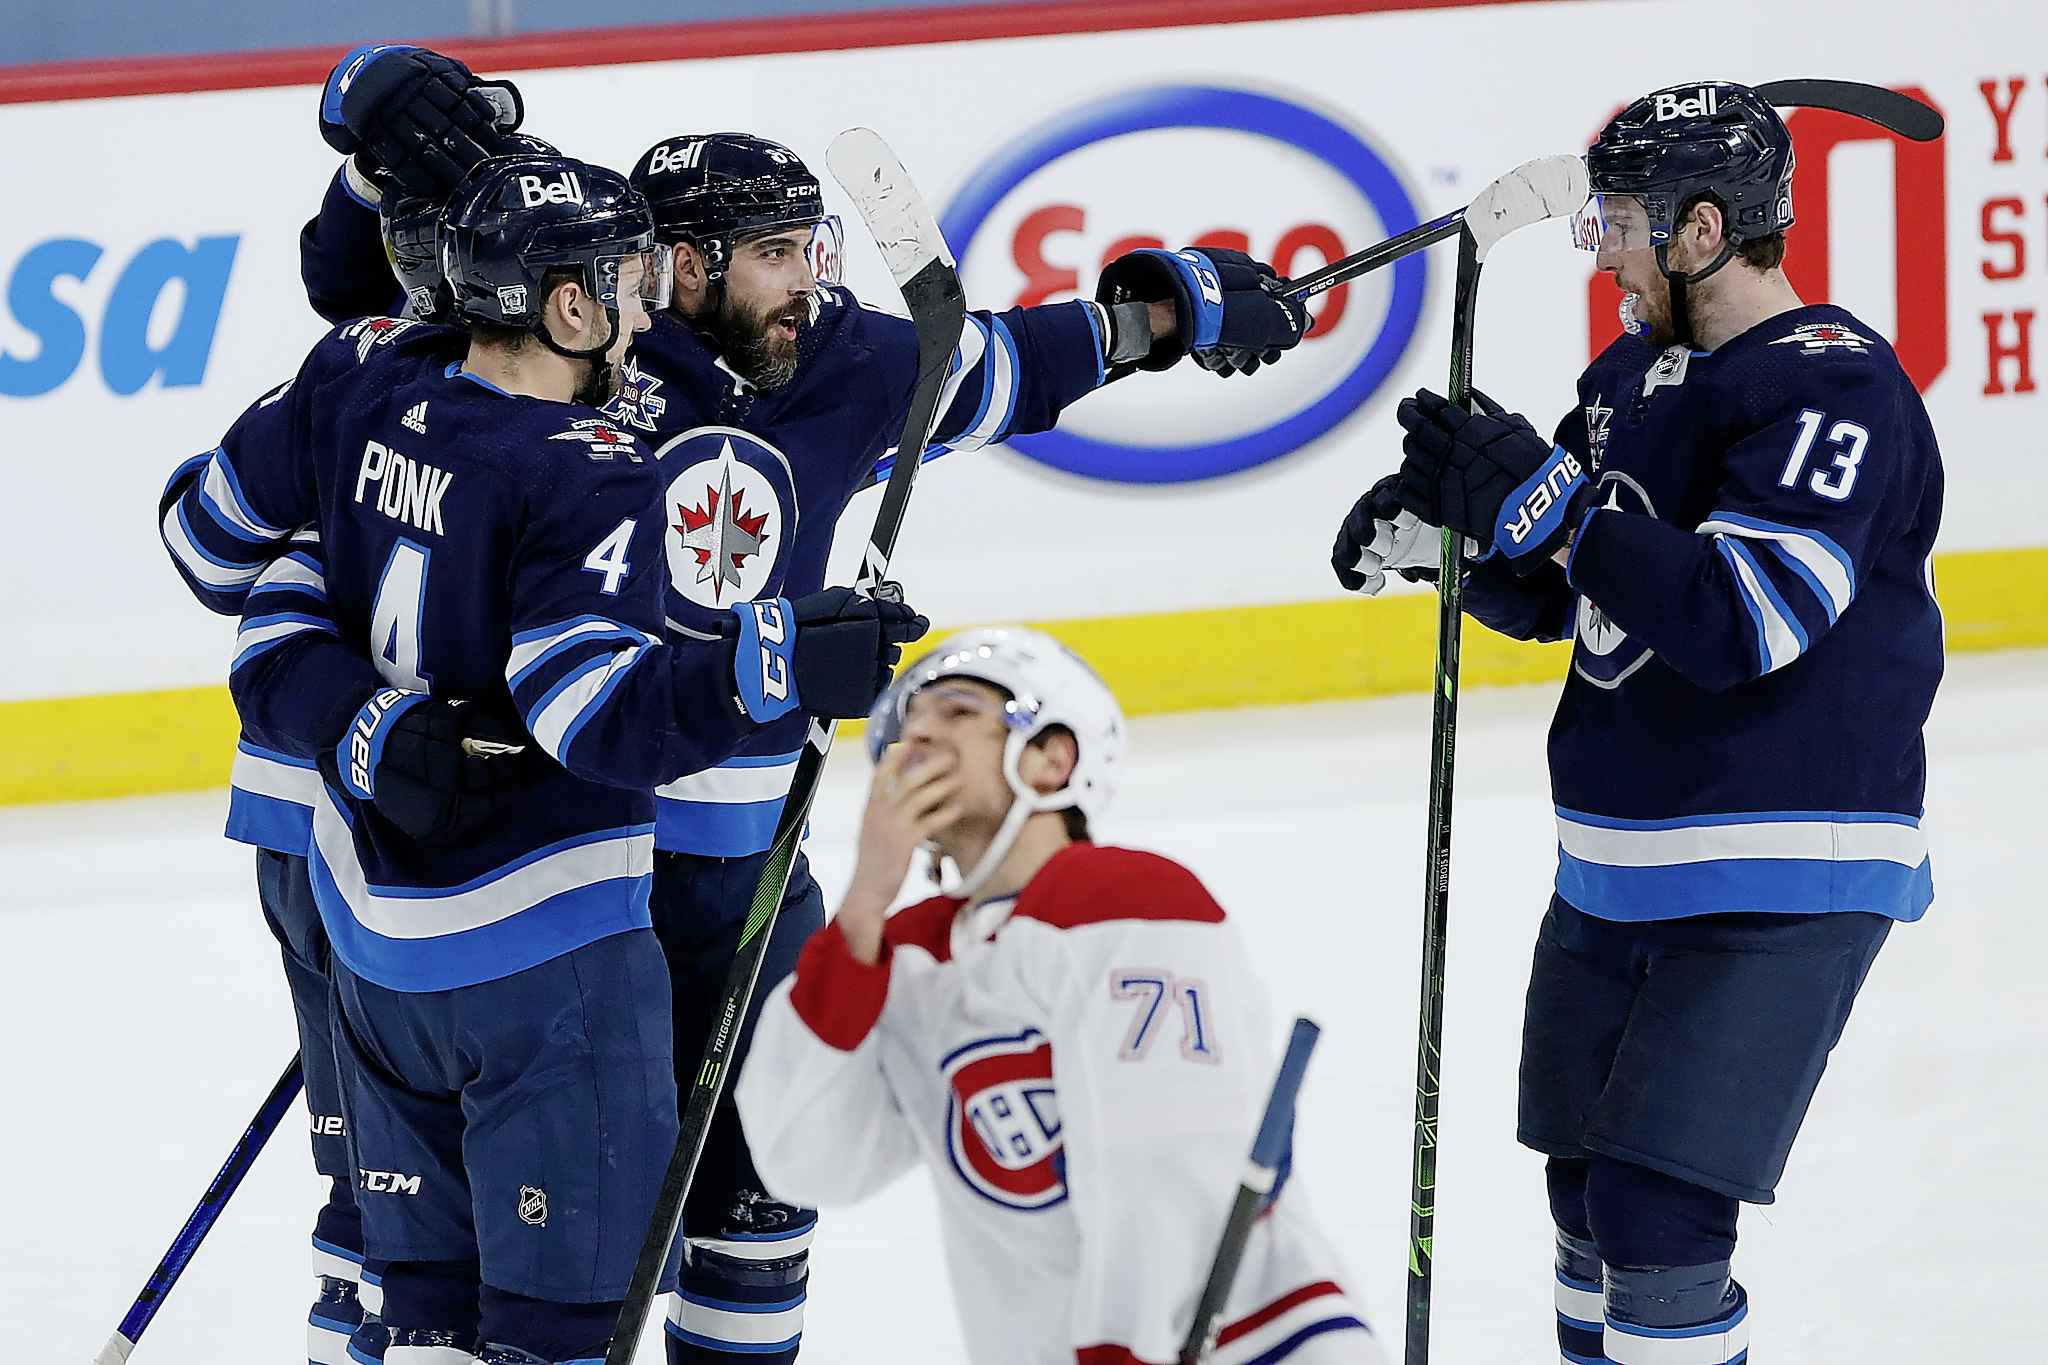 Winnipeg Jets' Neal Pionk (4), Nikolaj Ehlers (27), Mathieu Perreault (85) and Pierre-Luc Dubois (13) celebrate Ehlers' goal as Montreal Canadiens' Jake Evans (71) skates past during second period NHL action in Winnipeg on Saturday, February 27, 2021. (John Woods / The Canadian Press)